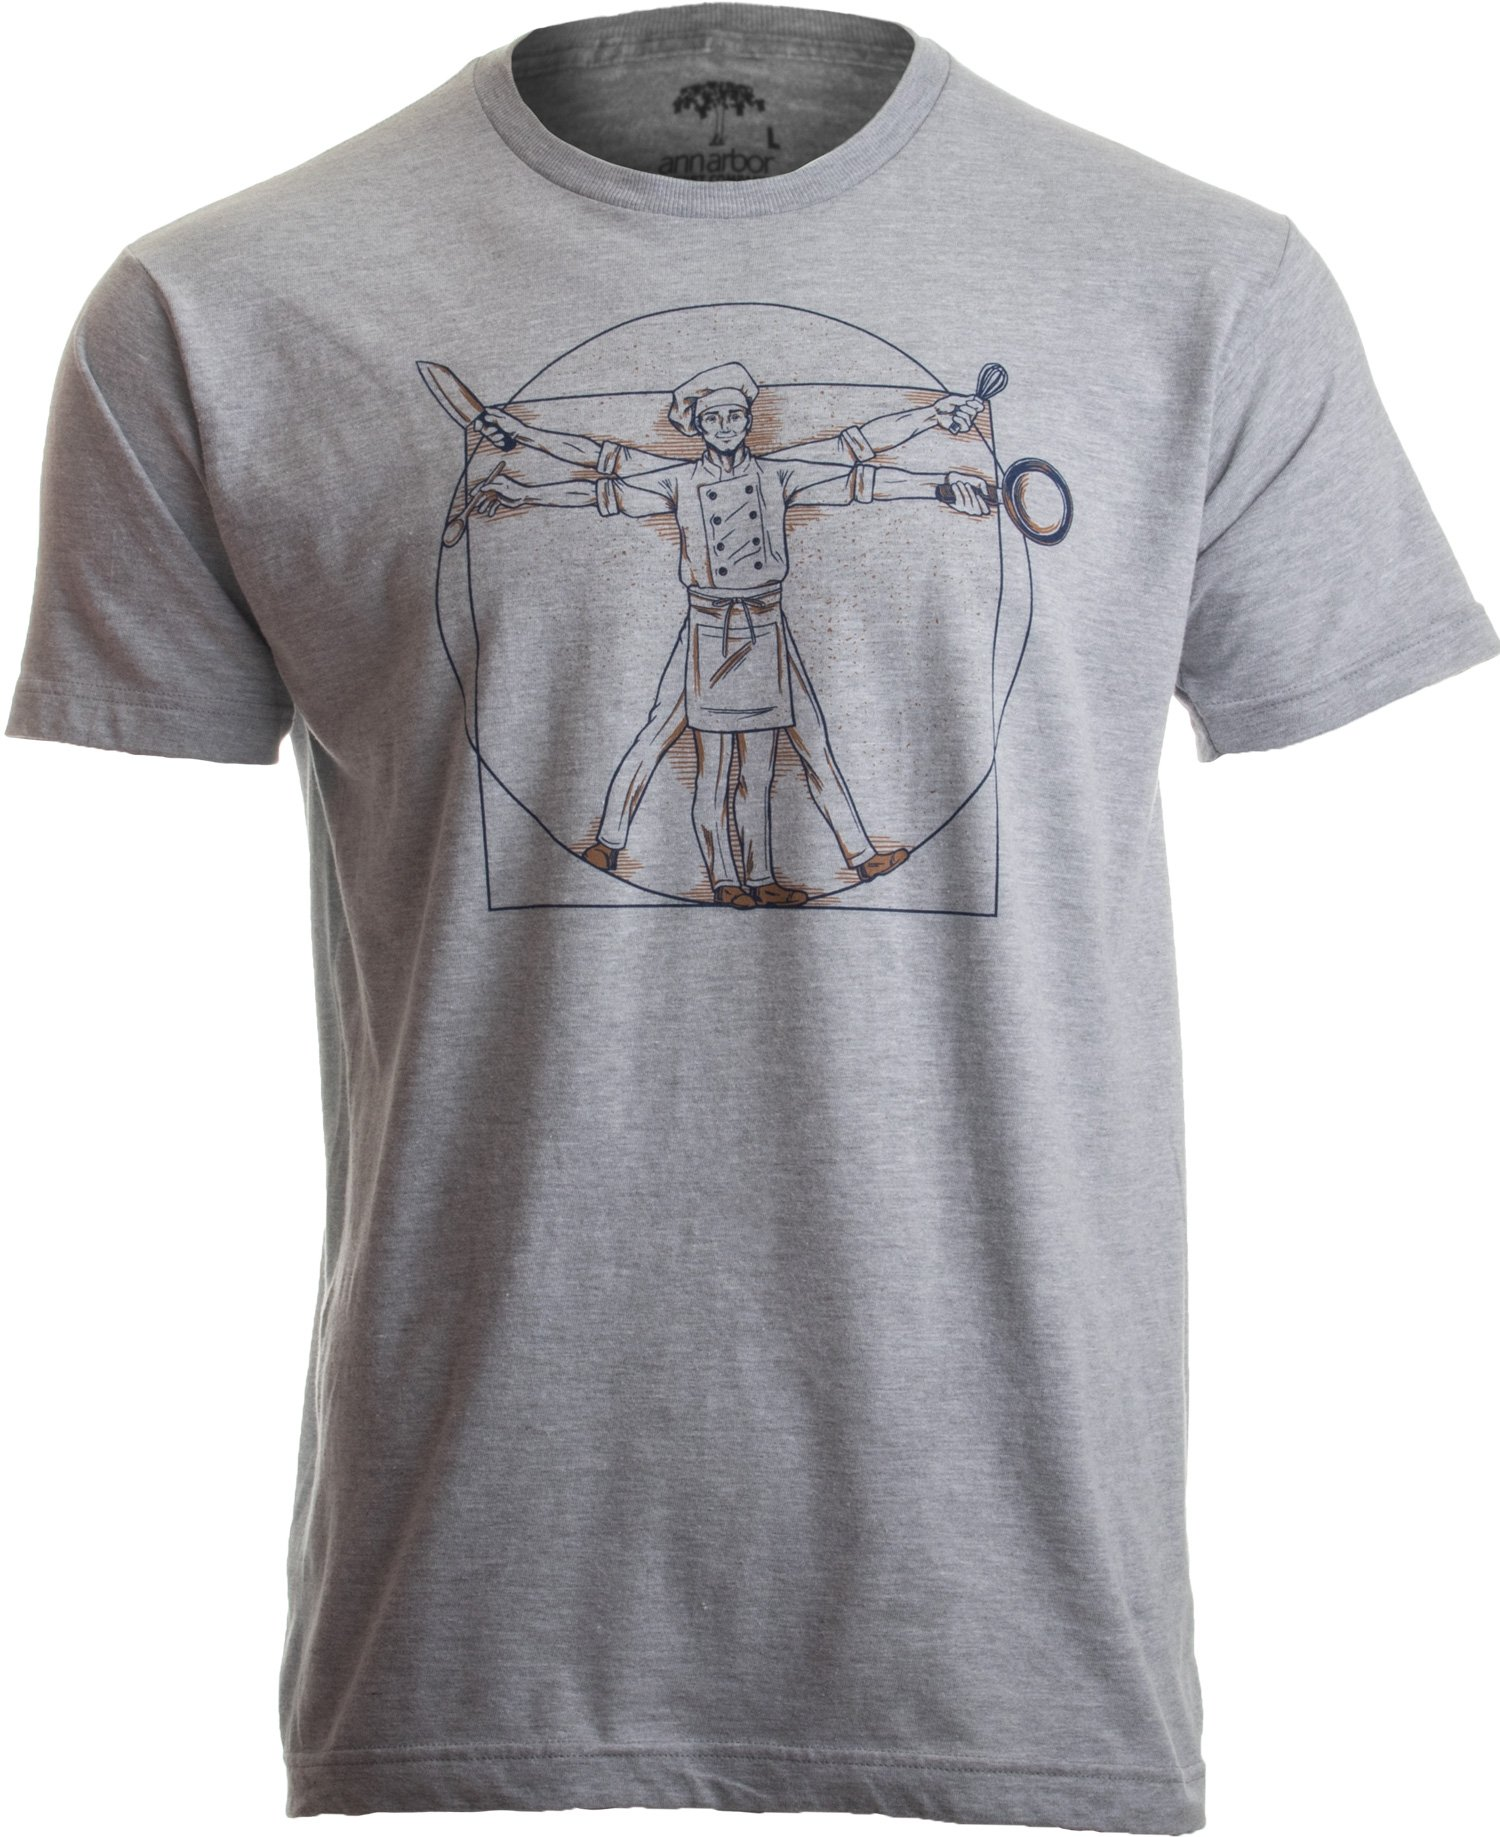 Vitruvian Chef Funny Cook Restaurant Kitchen Worker Food Cooking Humor 1775 Shirts